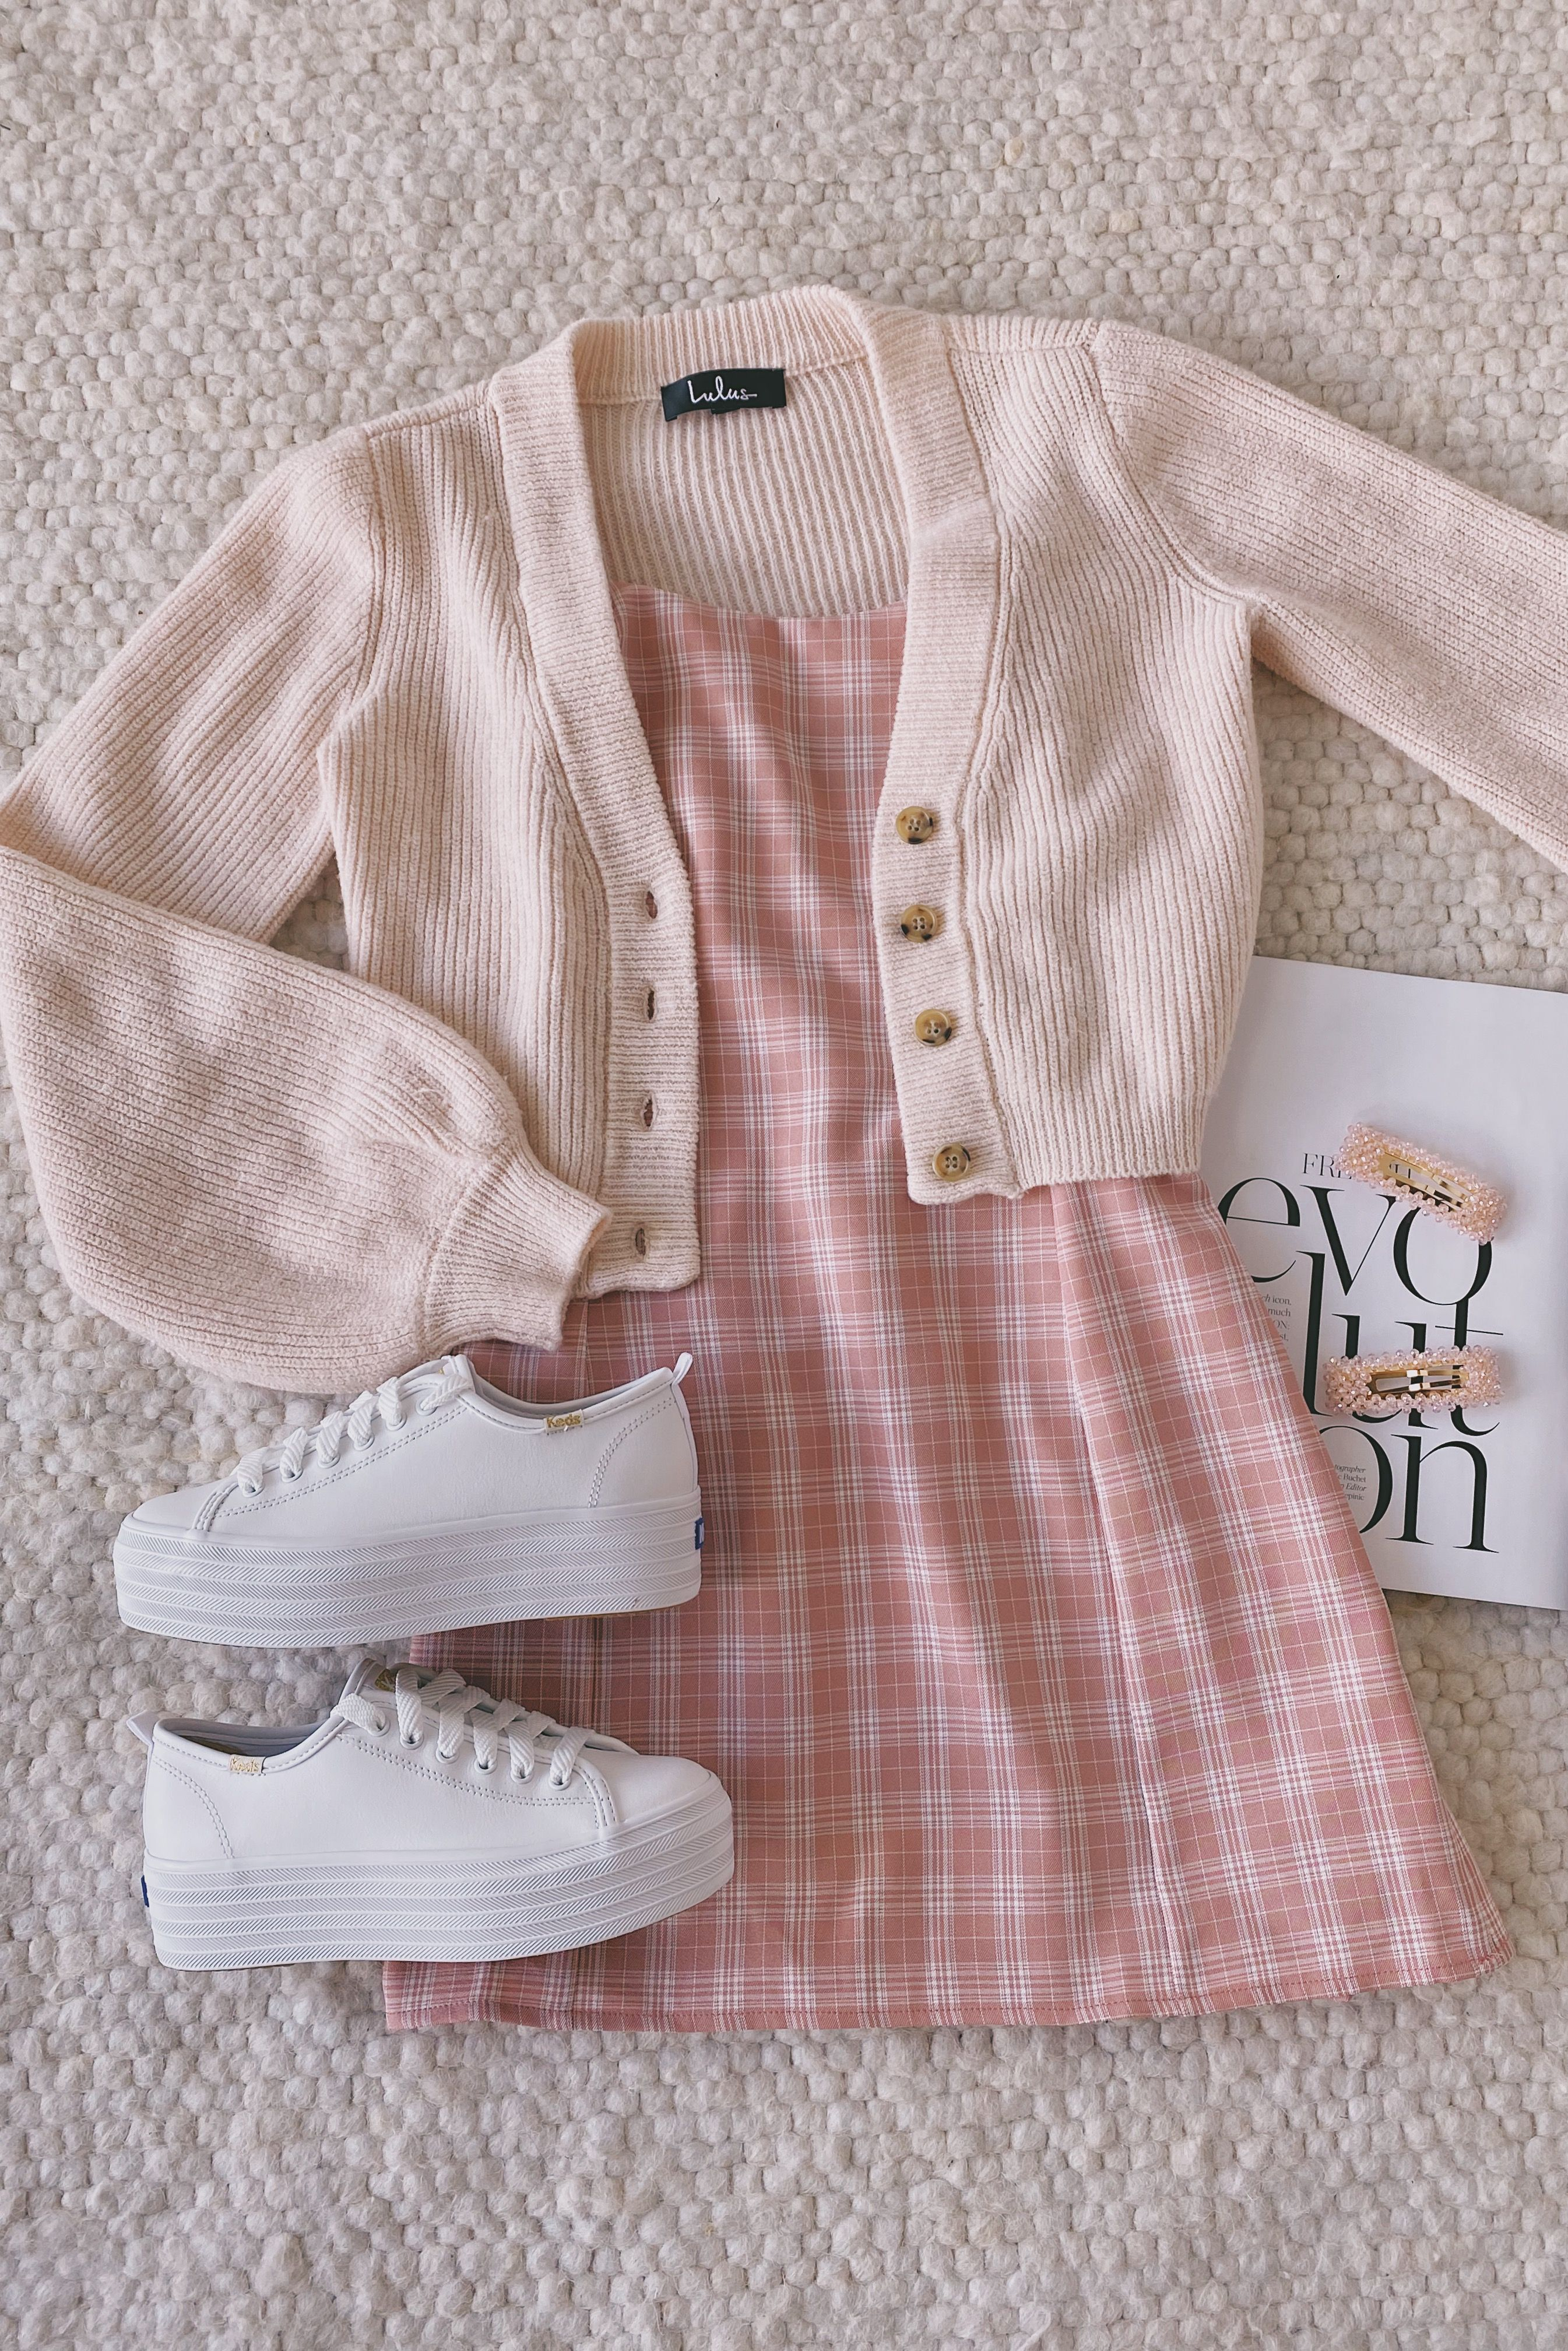 Plaid To Be Here Blush Pink Plaid Lace-Up Backless Mini Dress